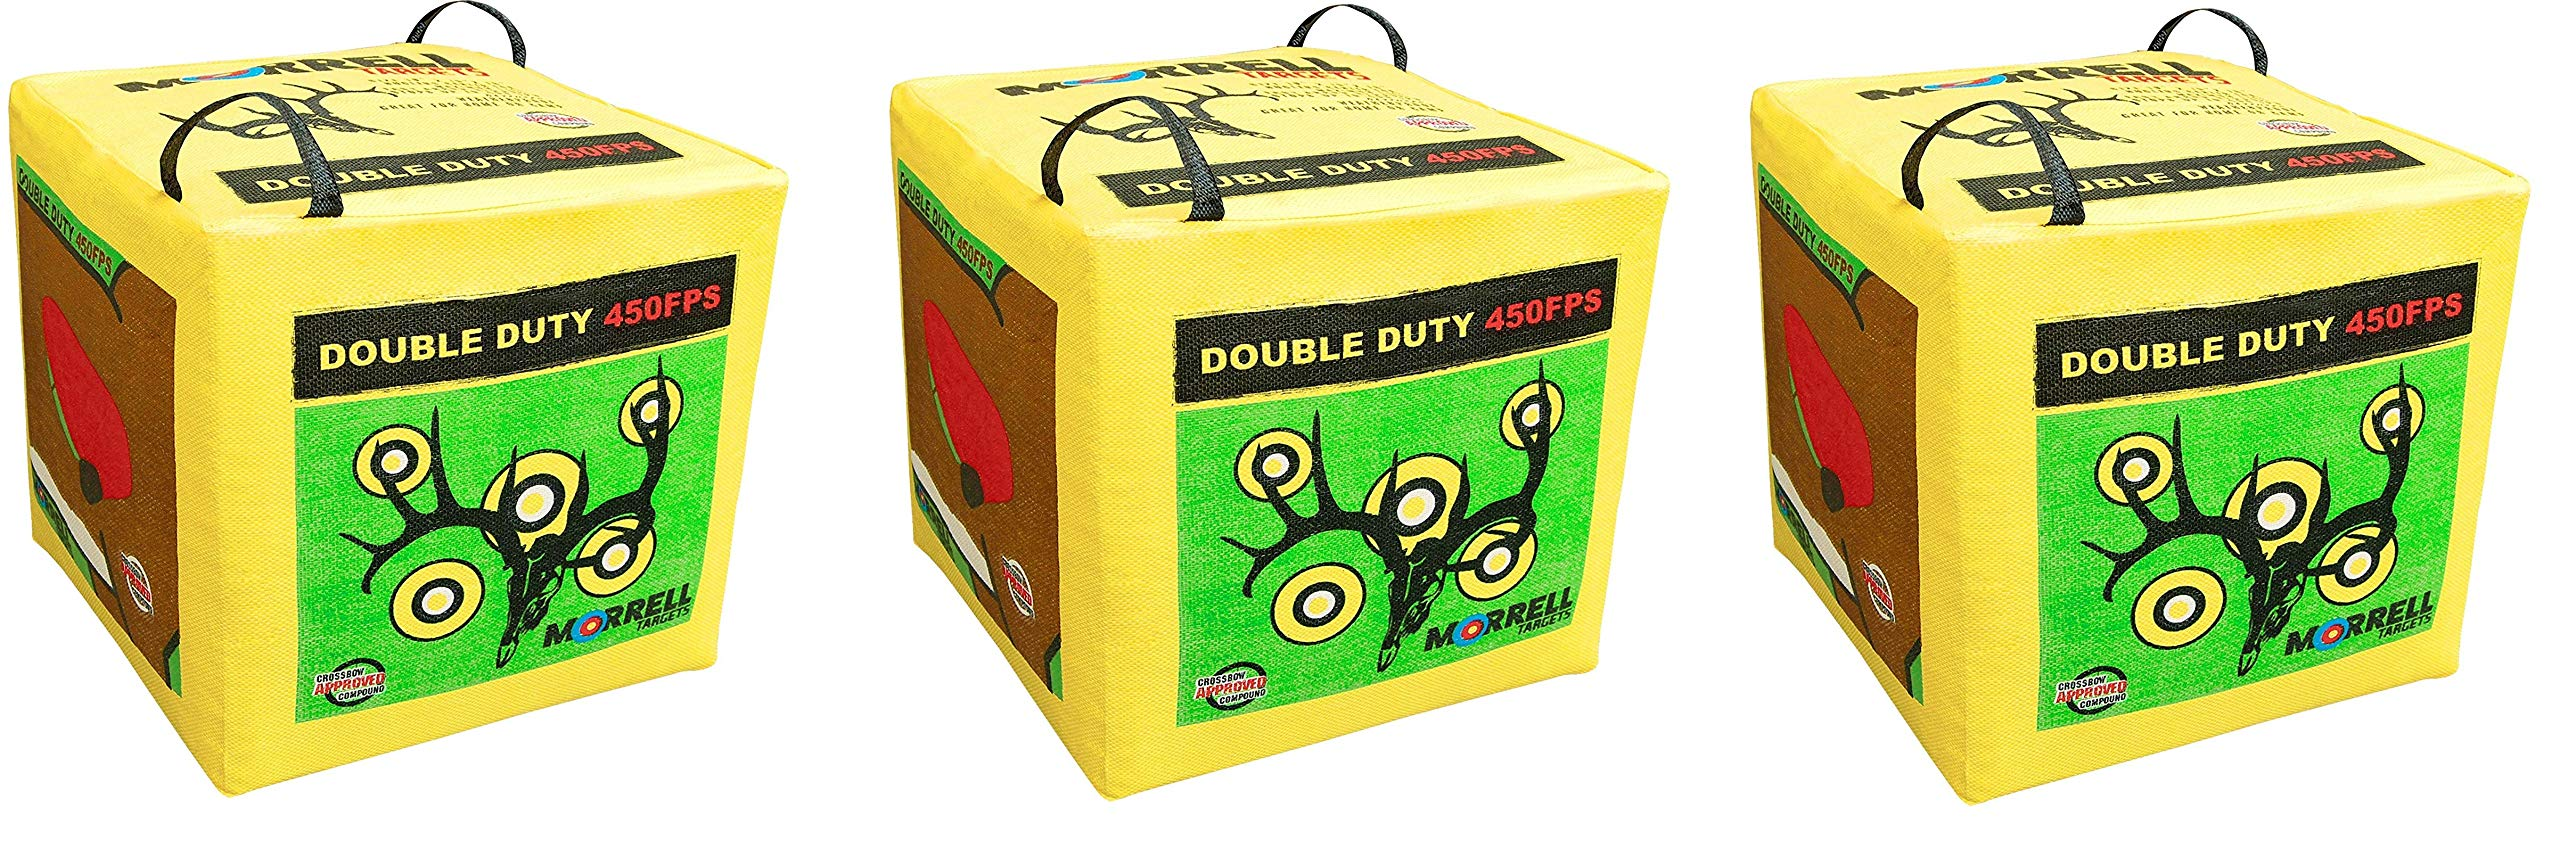 Morrell Double Duty 450FPS Field Point Bag Archery Target - for Crossbows, Compounds, Traditional Bows and Airbows (3-Pack)